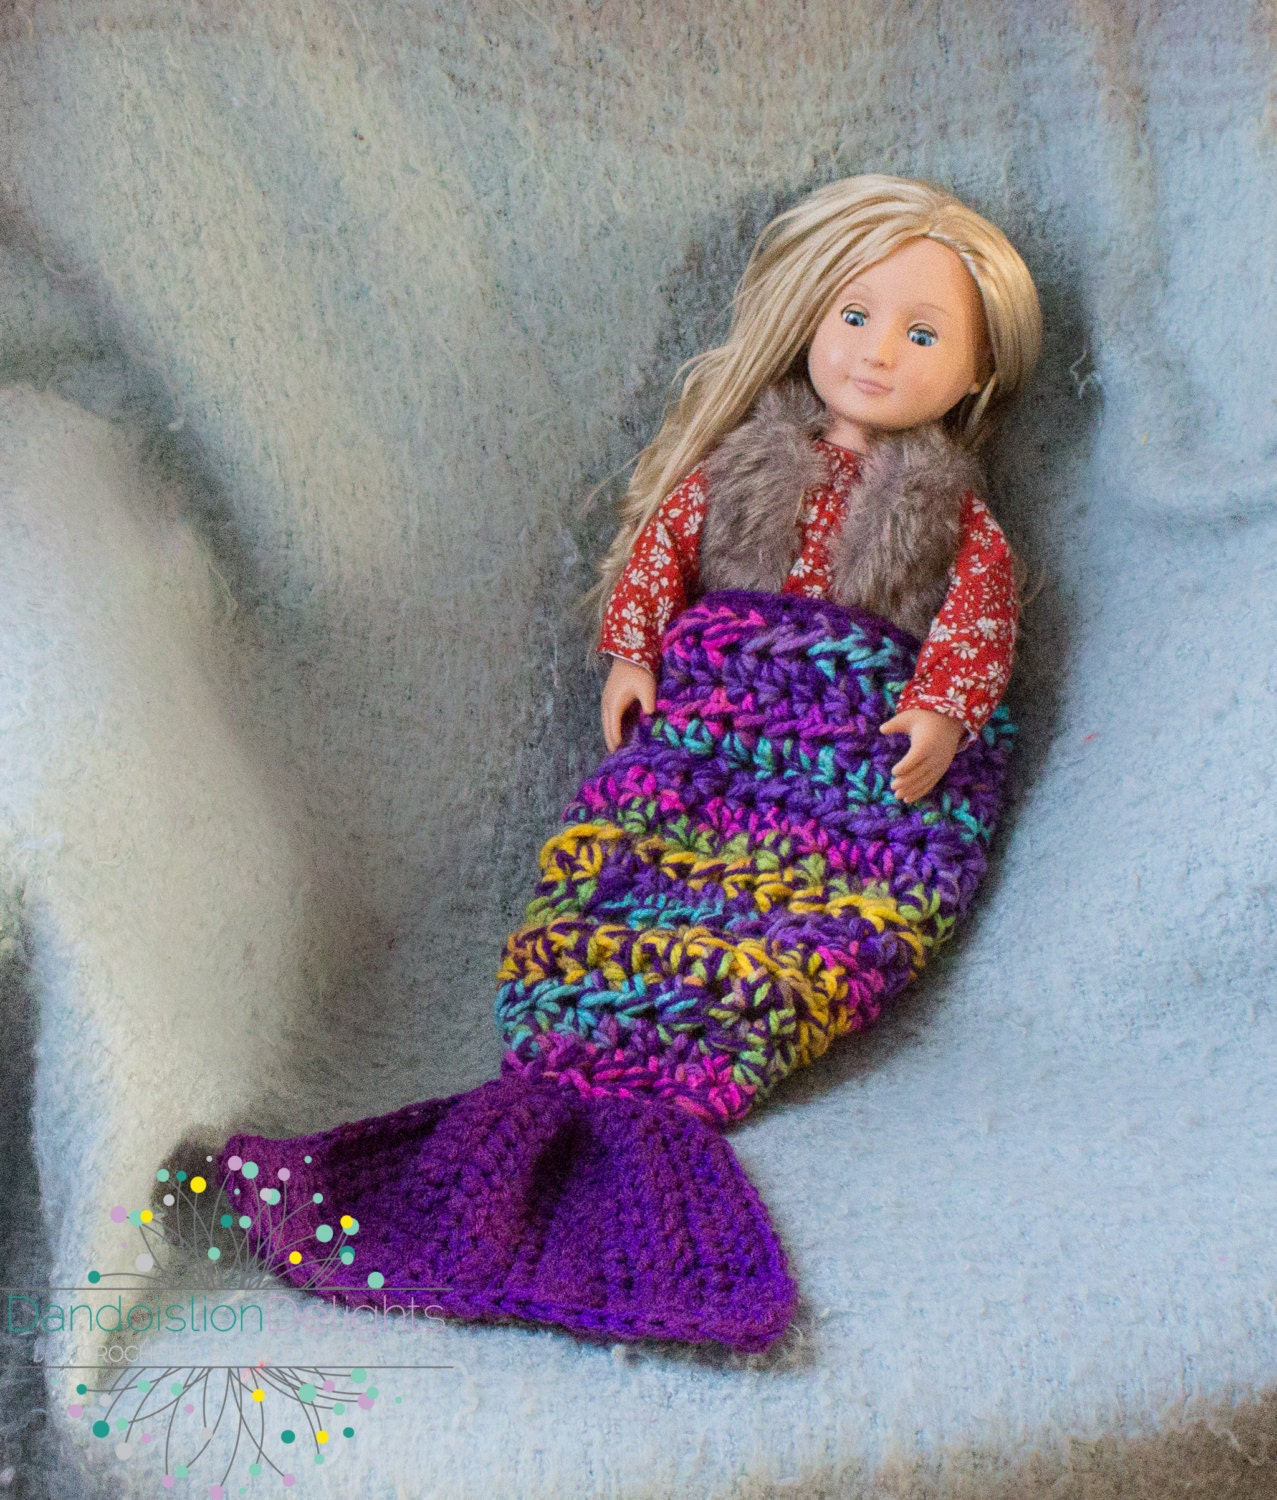 Mini Owl Amigurumi Pattern : Mermaid Tail Crochet Blanket for 18 dolls American Girl